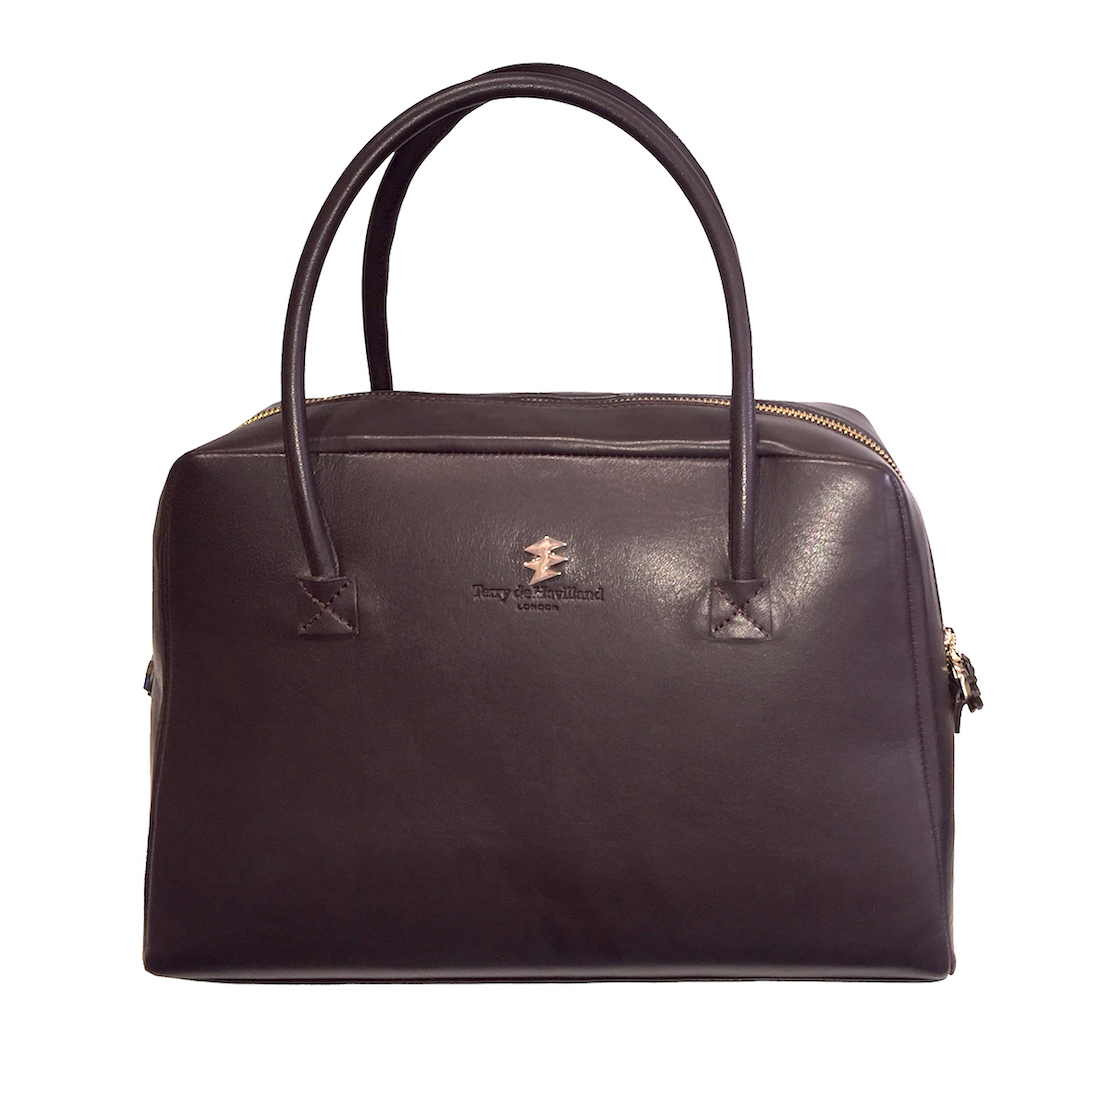 Zia Shopper Brown Terry de Havilland Bag 2